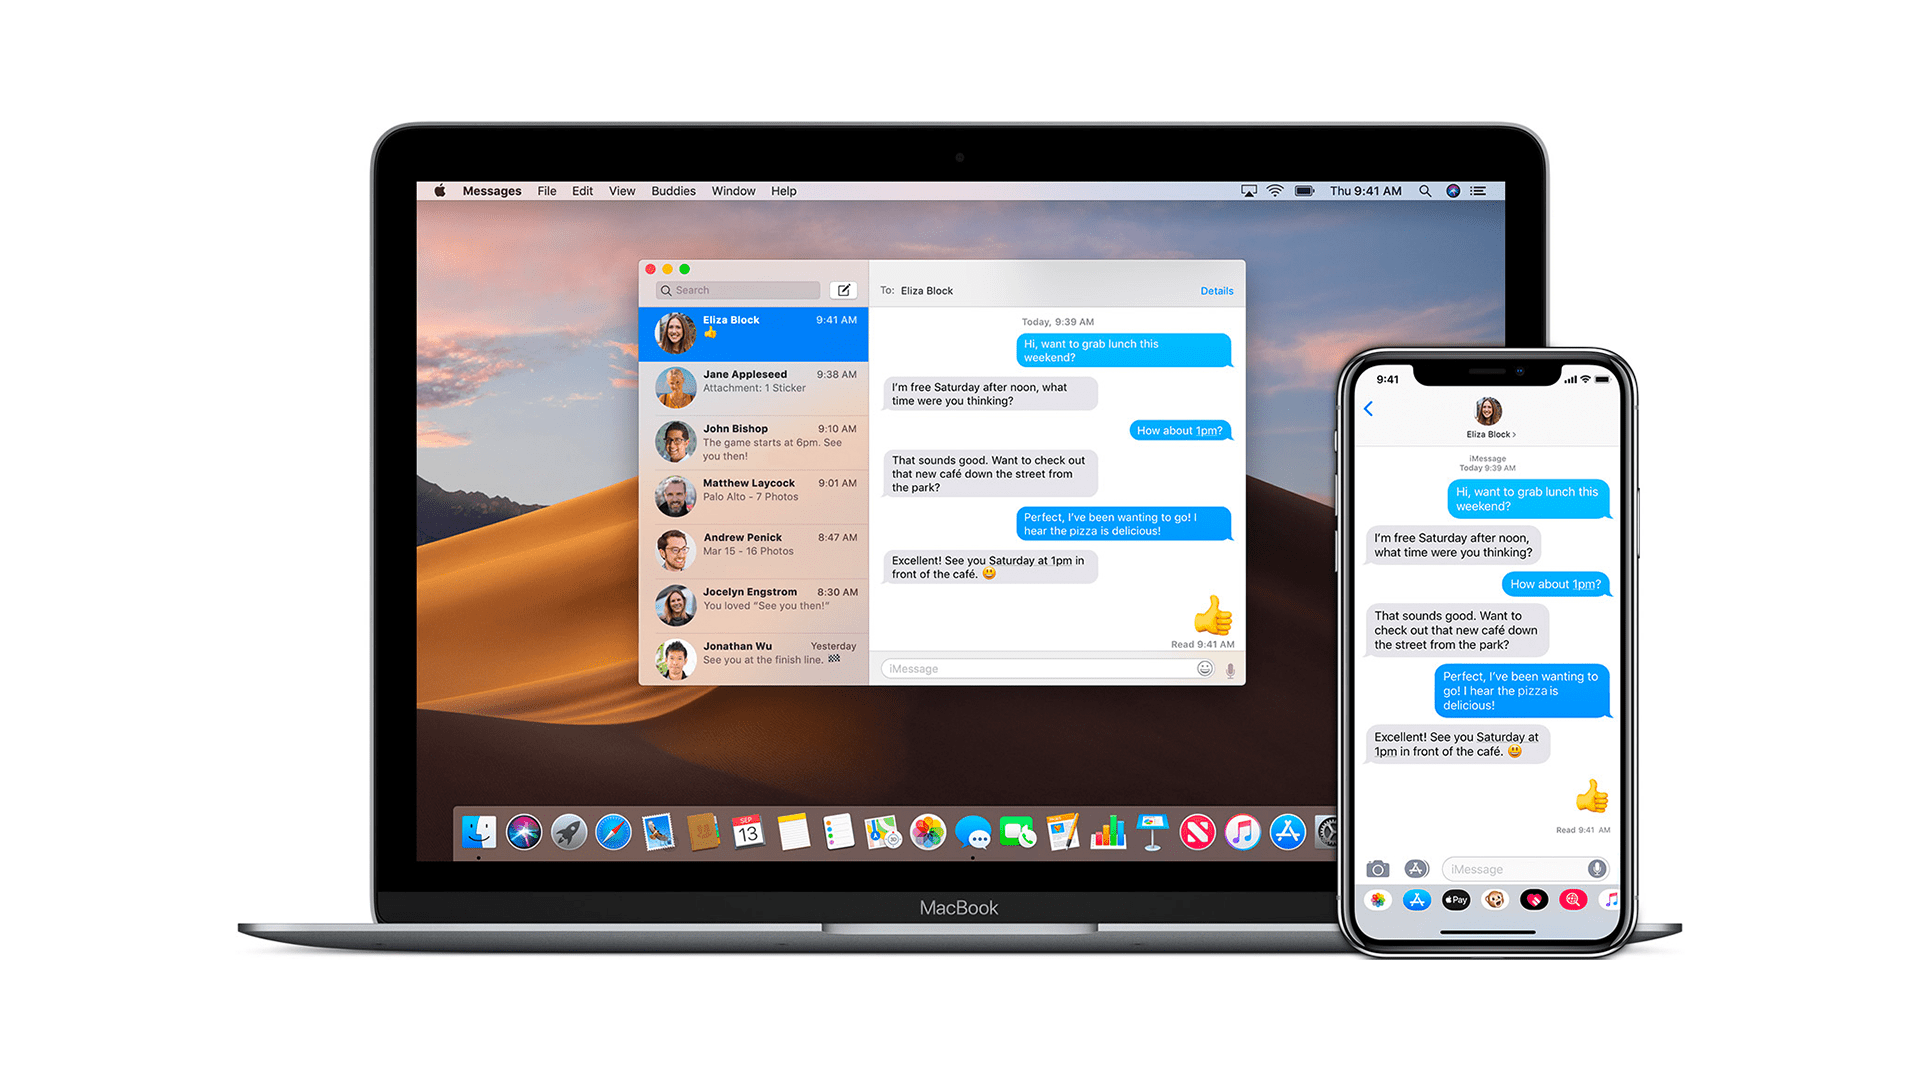 macOS Messages Upgrade Includes Extensions, Stickers, and Message Effects